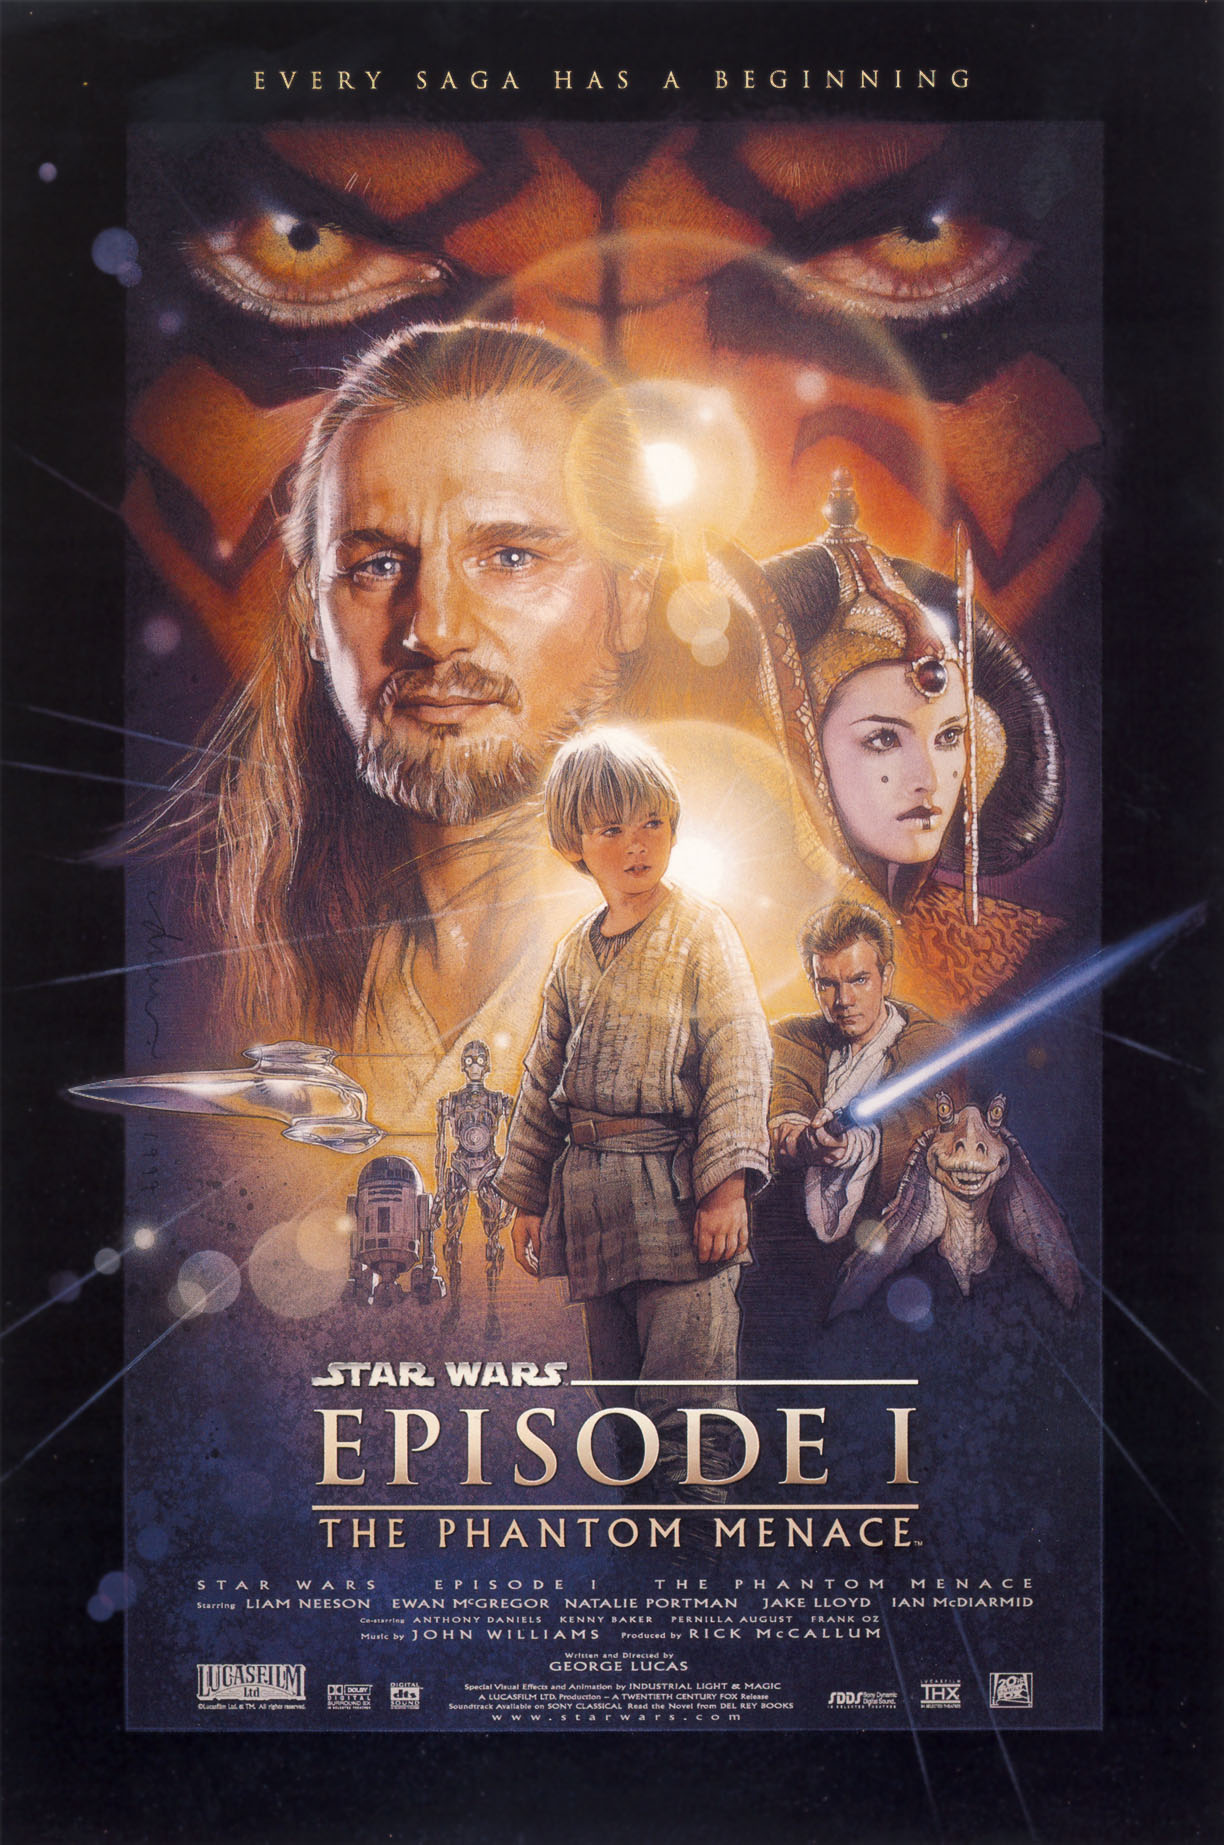 The Phantom Menace (1999)